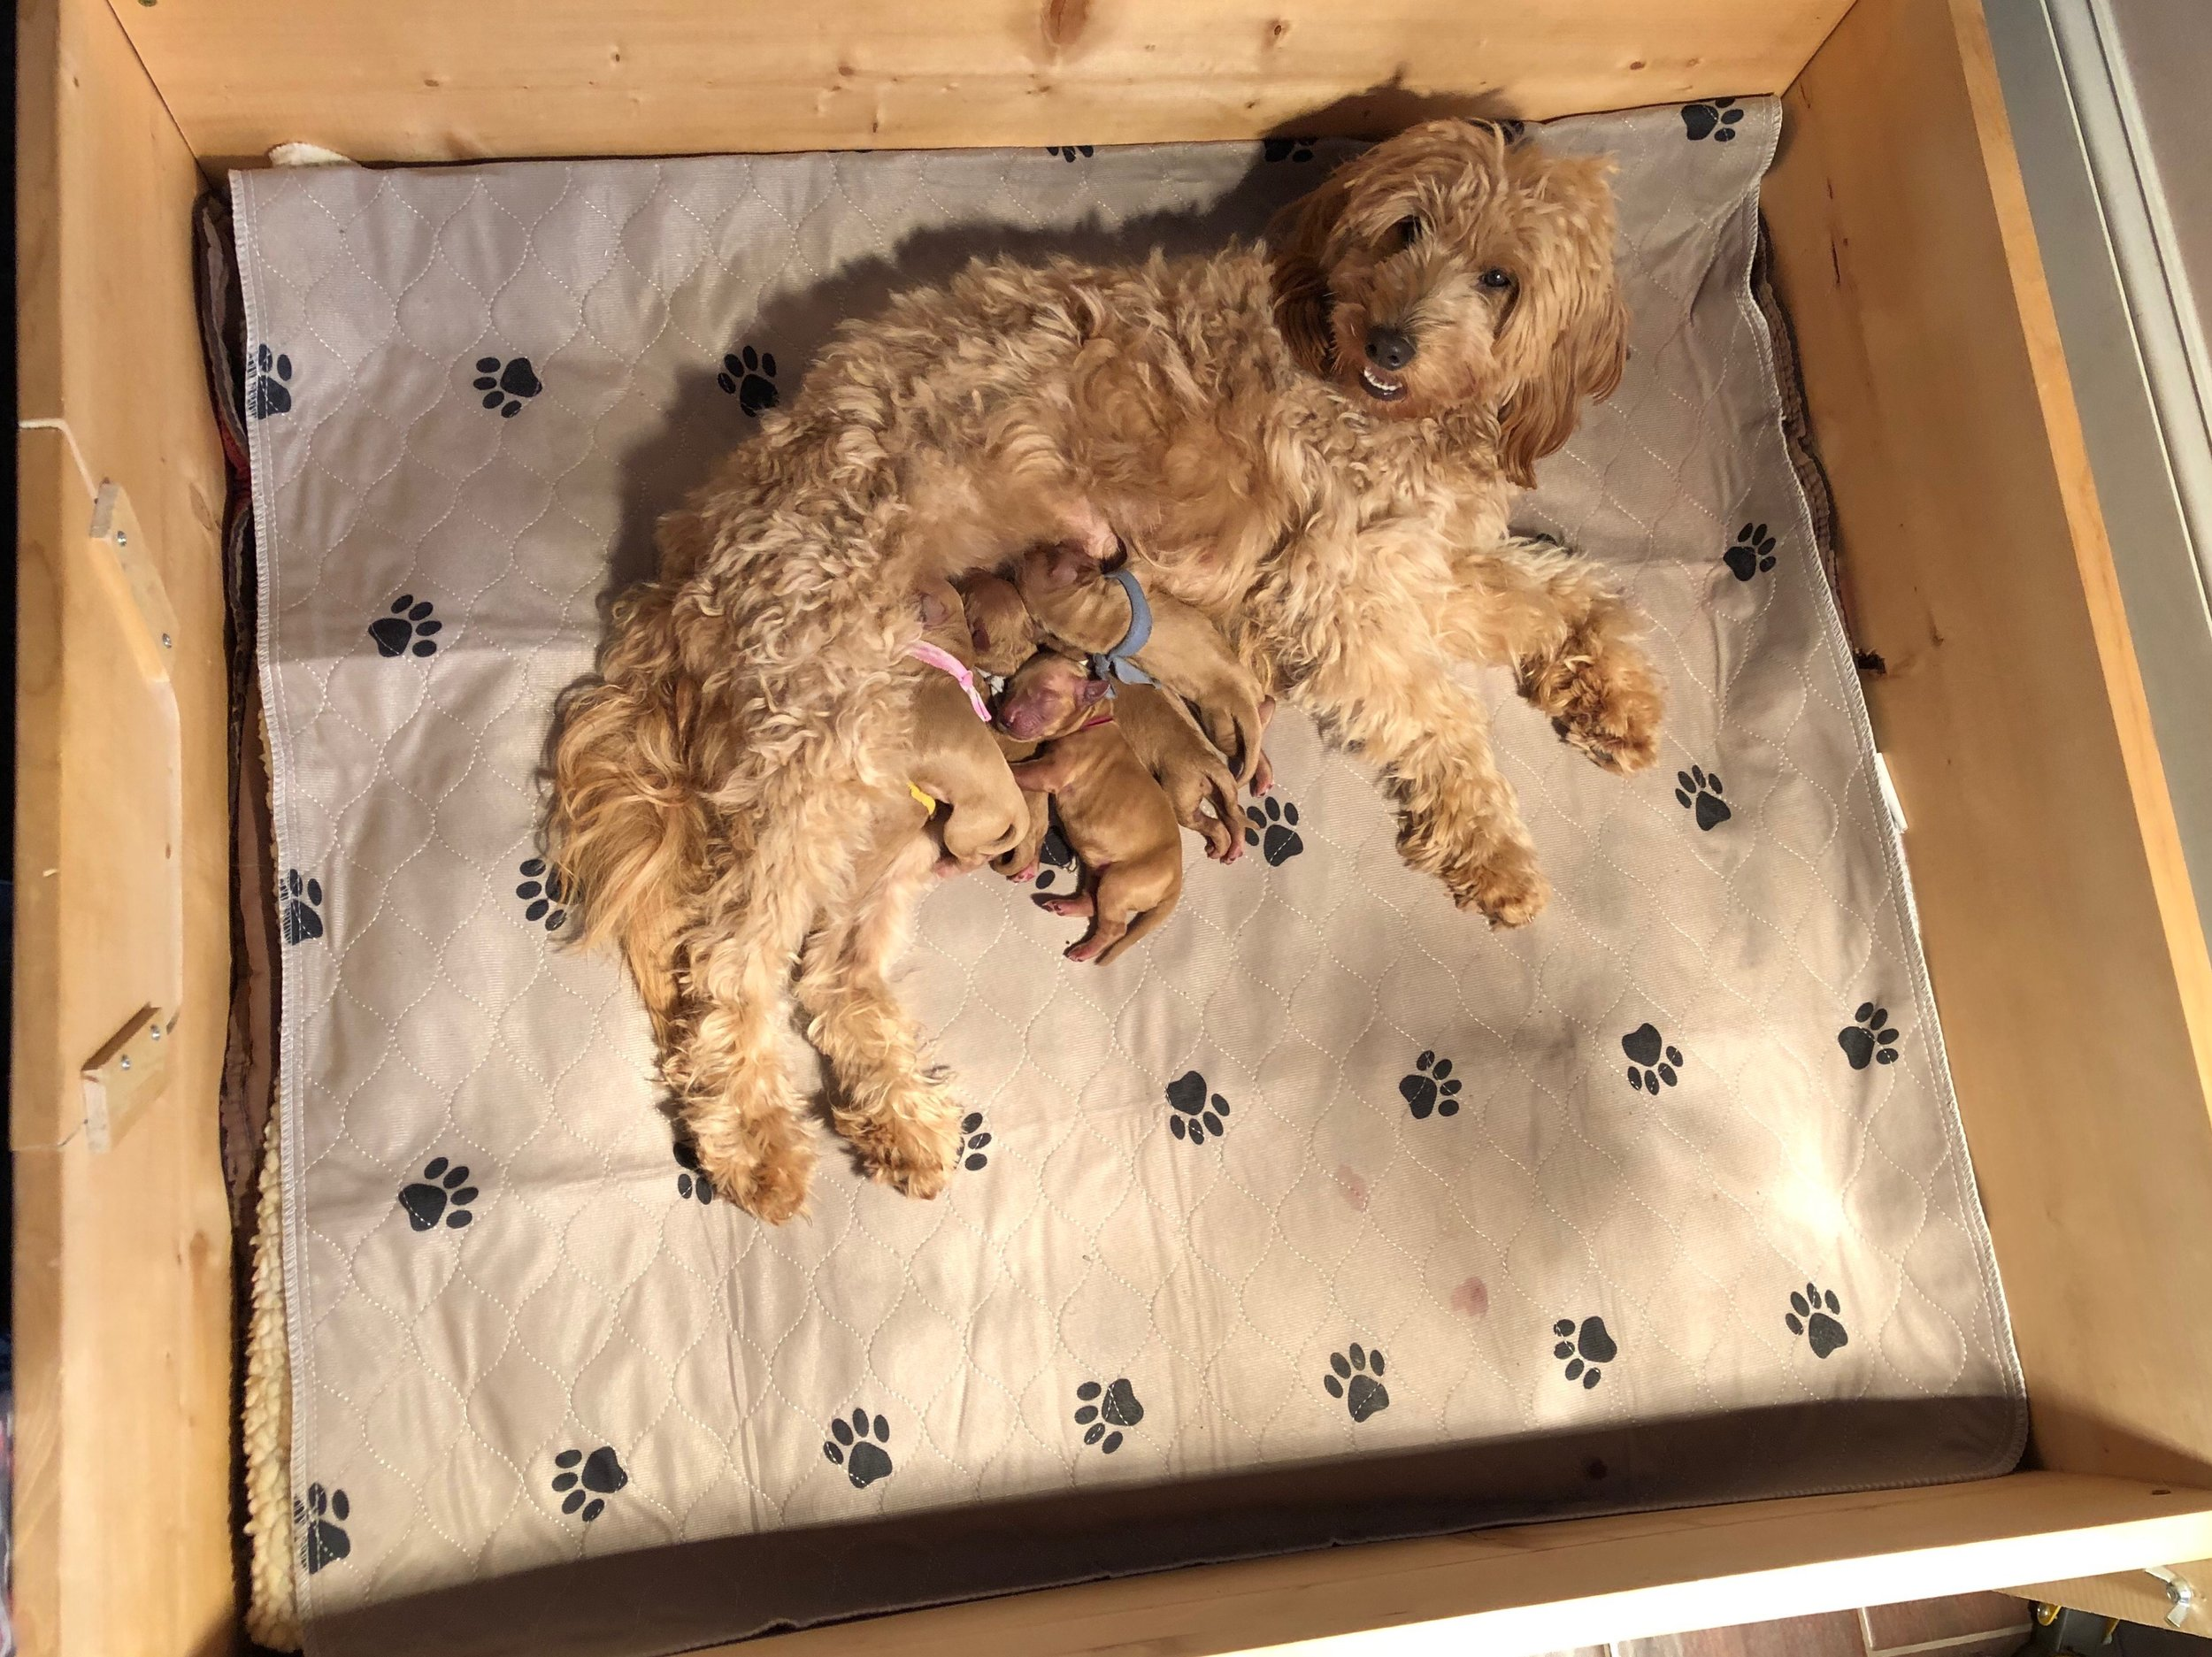 Patchy and Puppies: 1 Day Old - Feb 1